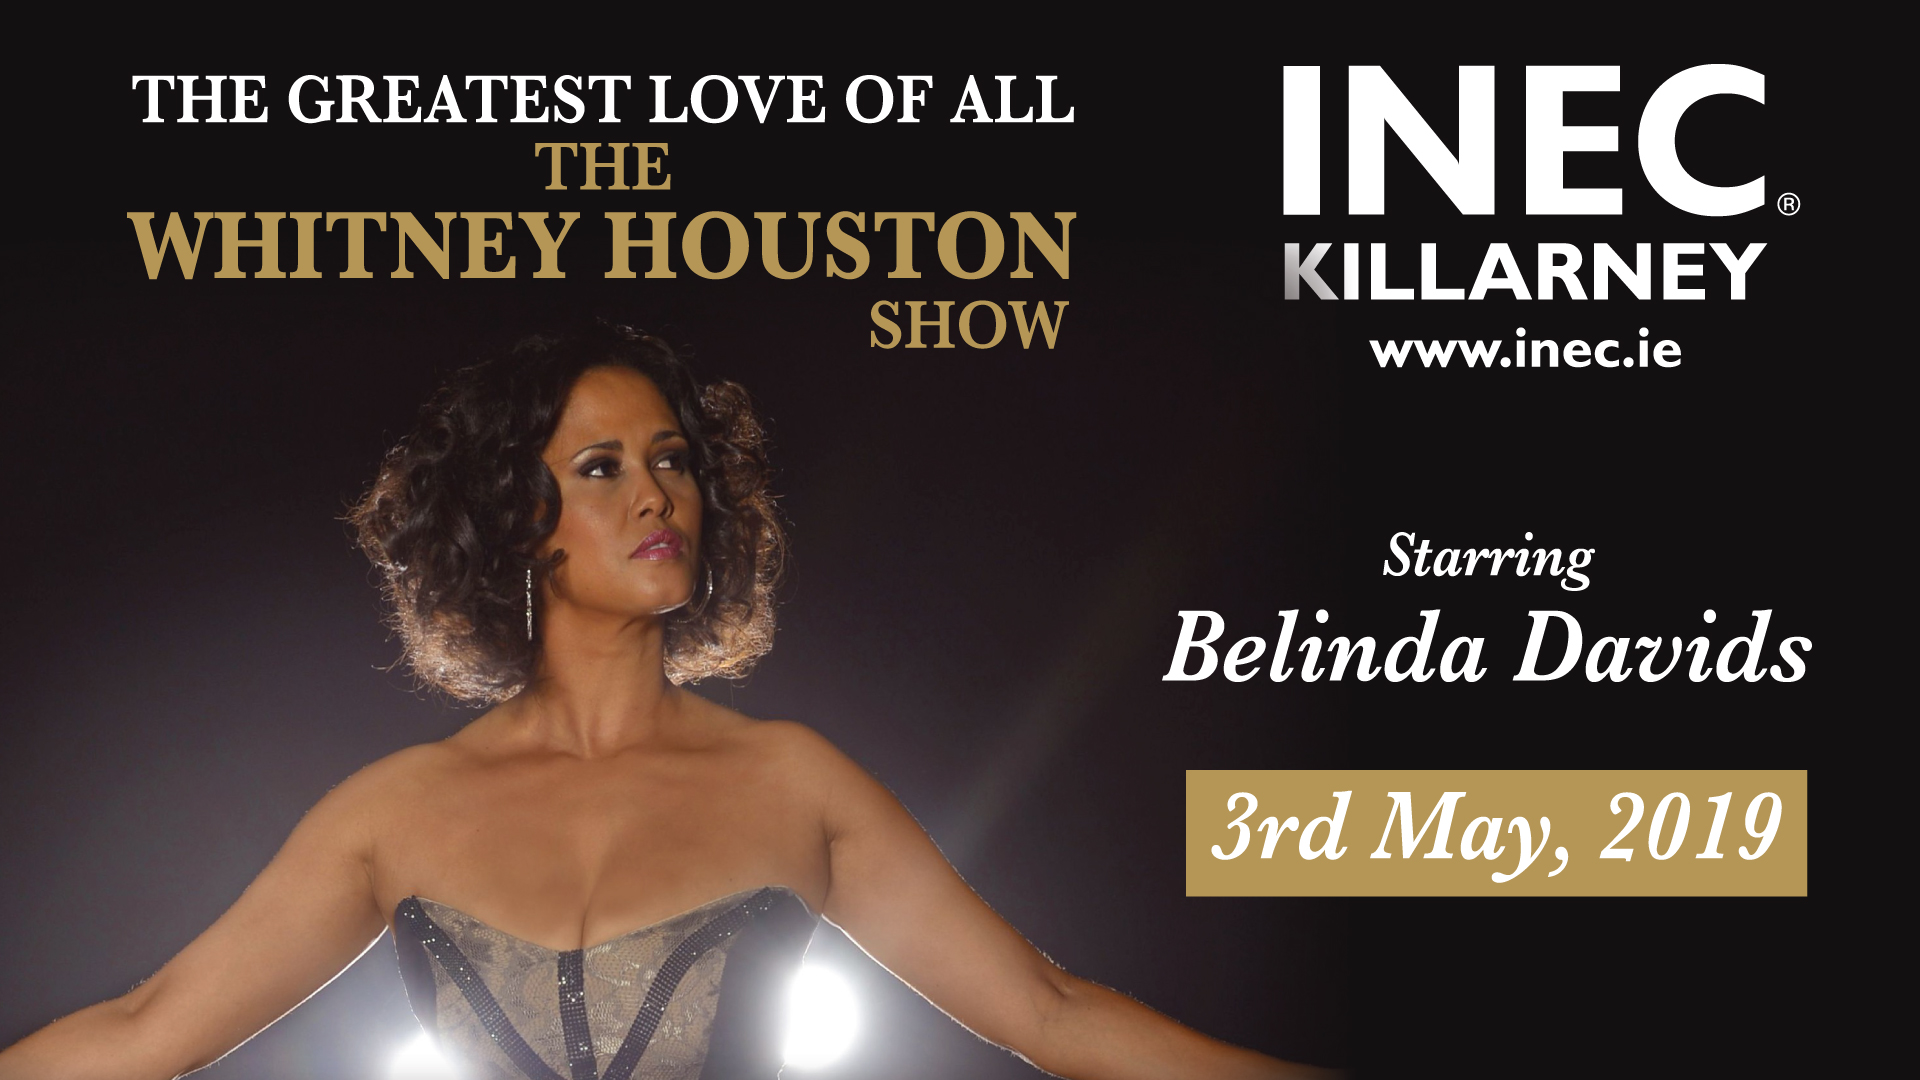 The Greatest Love of All - The Whitney Houston Show comes to the INEC Killarney on May 3rd 2019